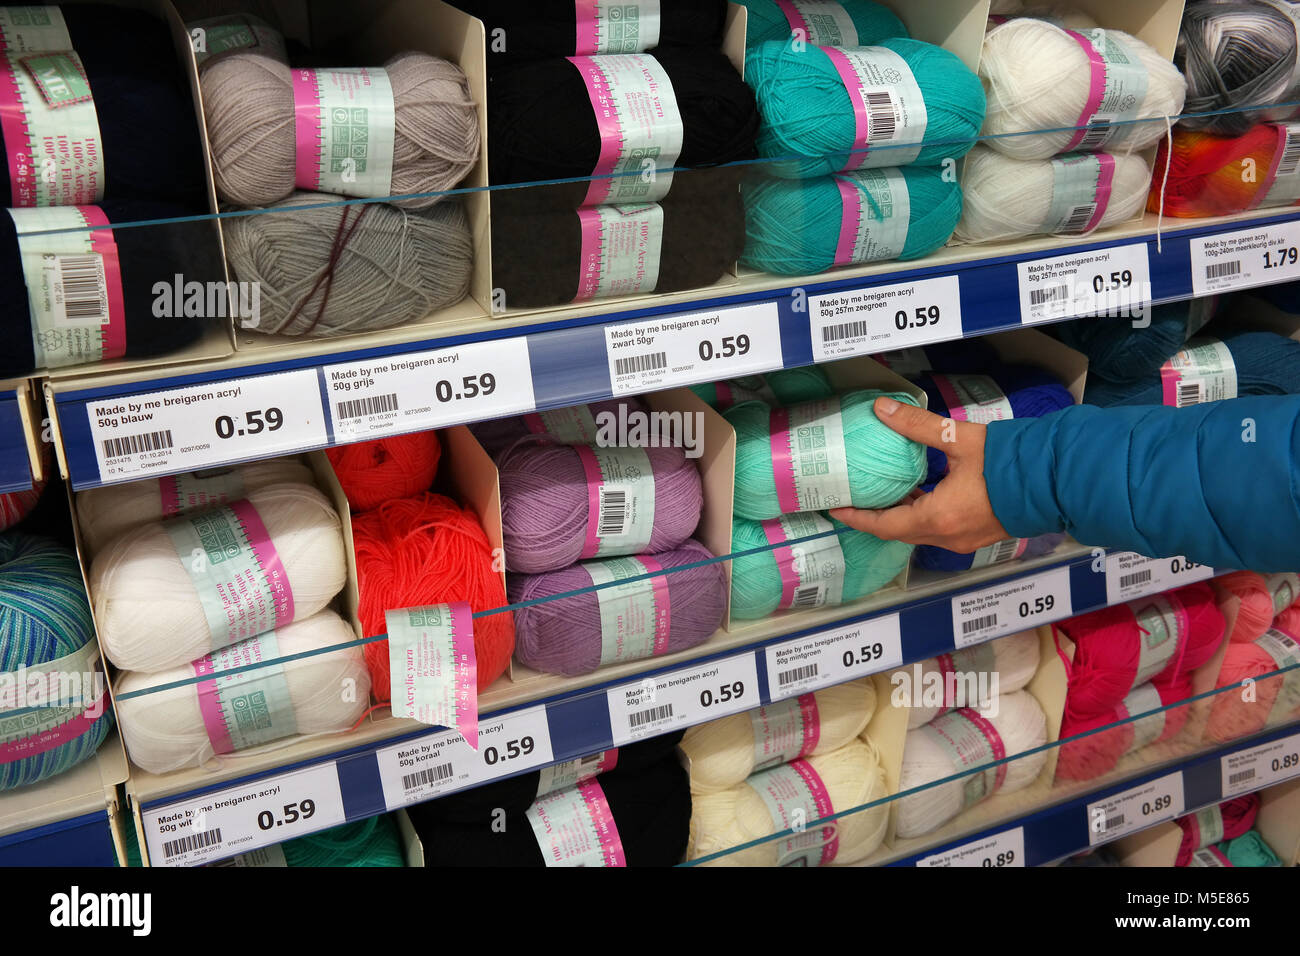 Hand knitting yarn in a store - Stock Image